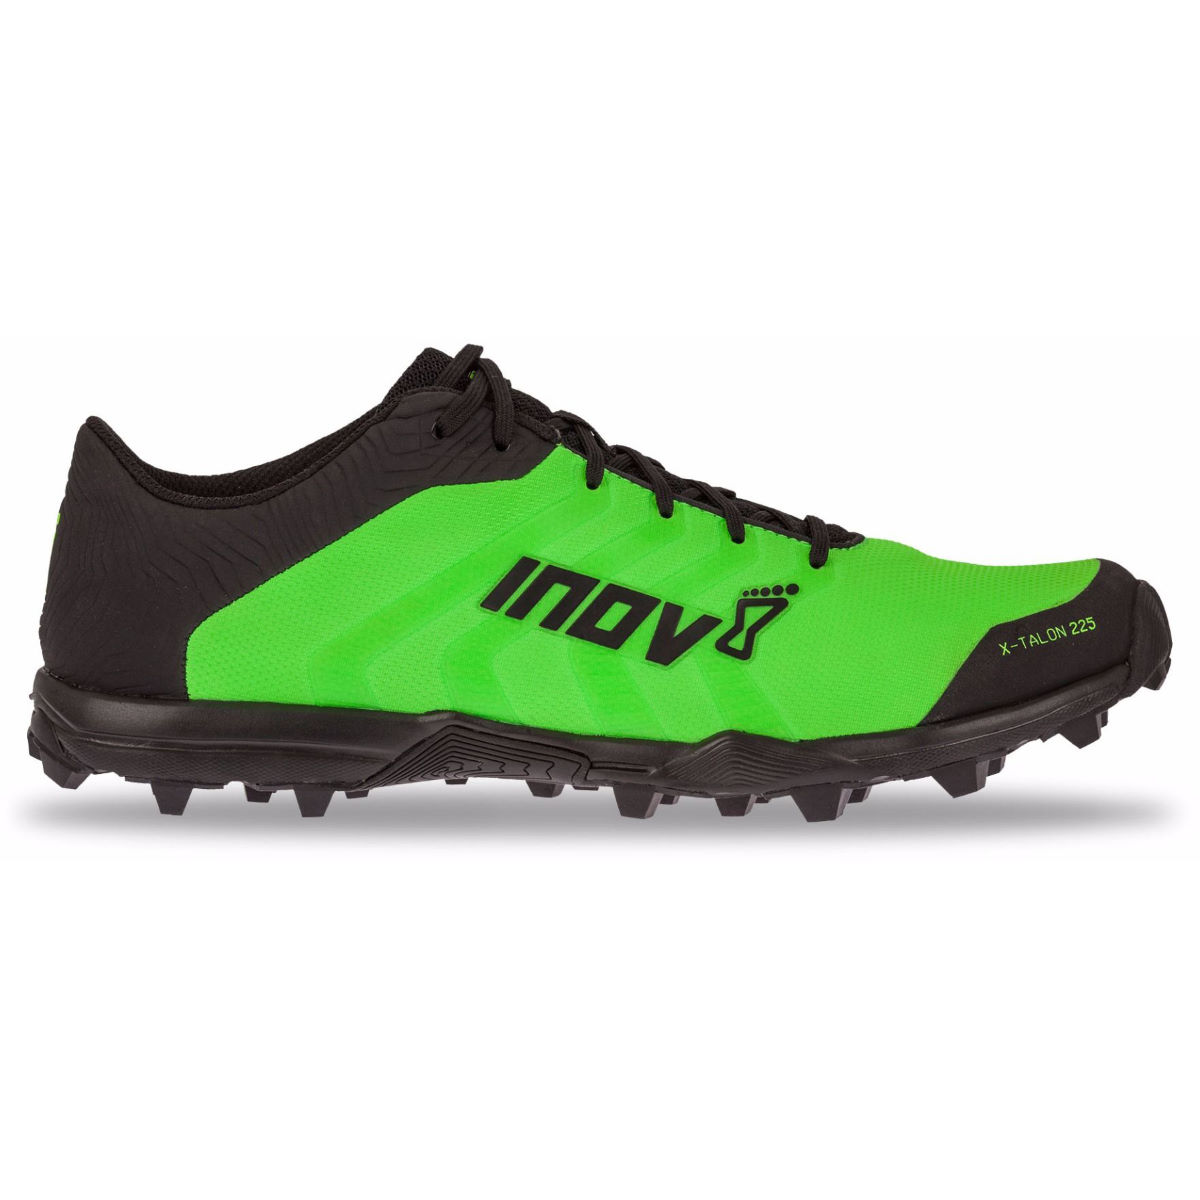 Chaussures Inov-8 X-Talon 225 - UK 11 GREEN/BLACK